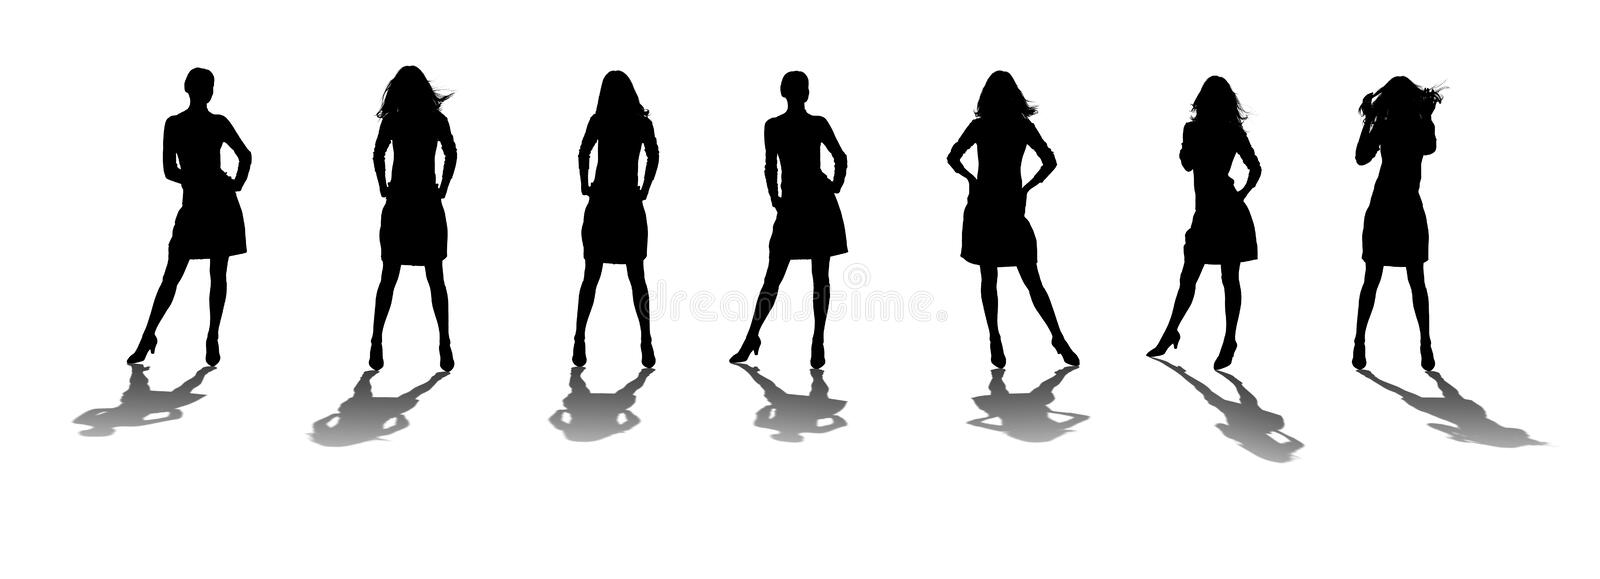 Download Silhouette Of The Woman With Reflection Stock Illustration - Illustration of illustration, computer: 18207015